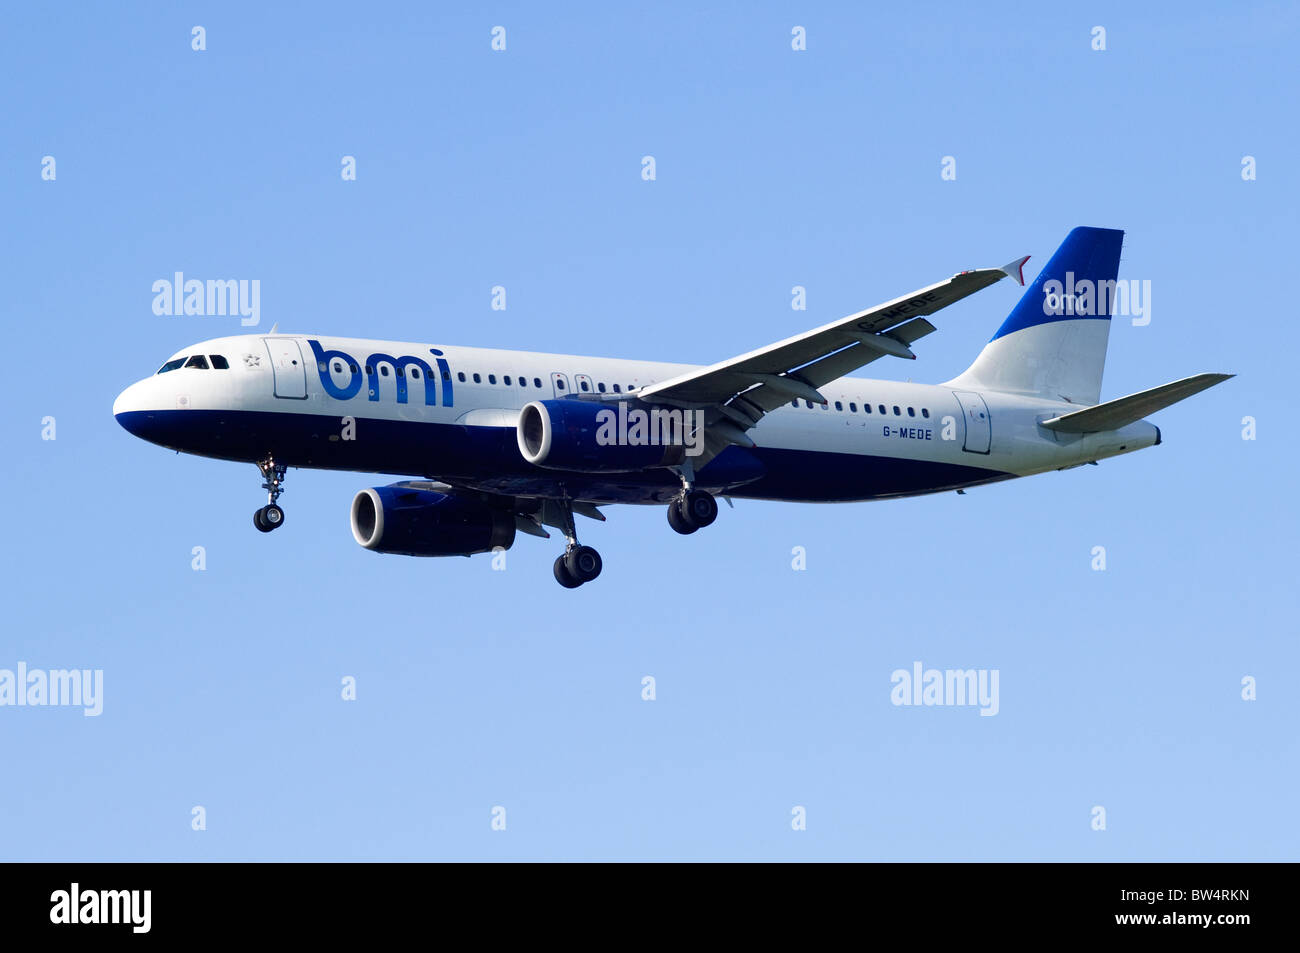 Airbus A320 operated by BMI on approach for landing at London Heathrow Airport - Stock Image